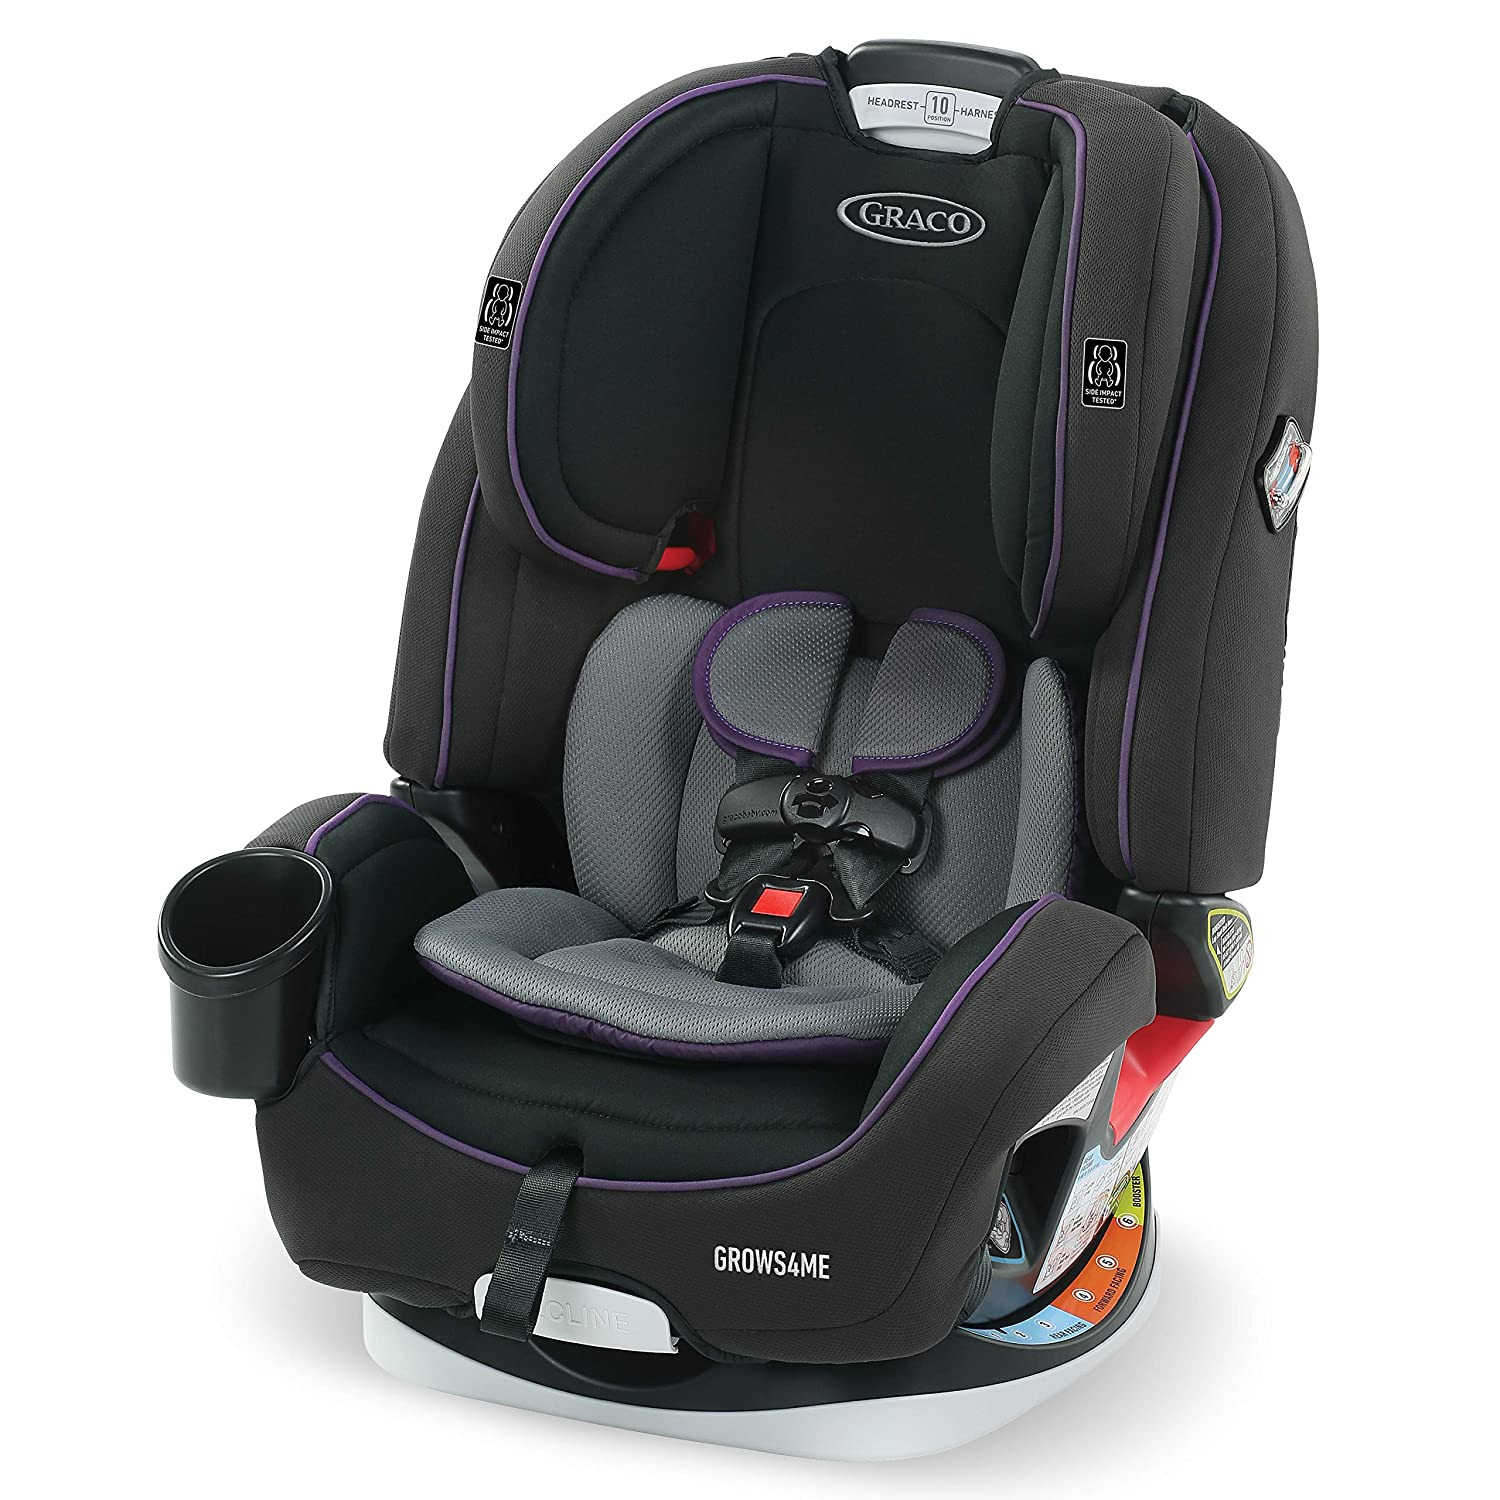 Graco Grows4Me 4 in 1 Car Seat Infant to Toddler Car Seat with 4 Modes